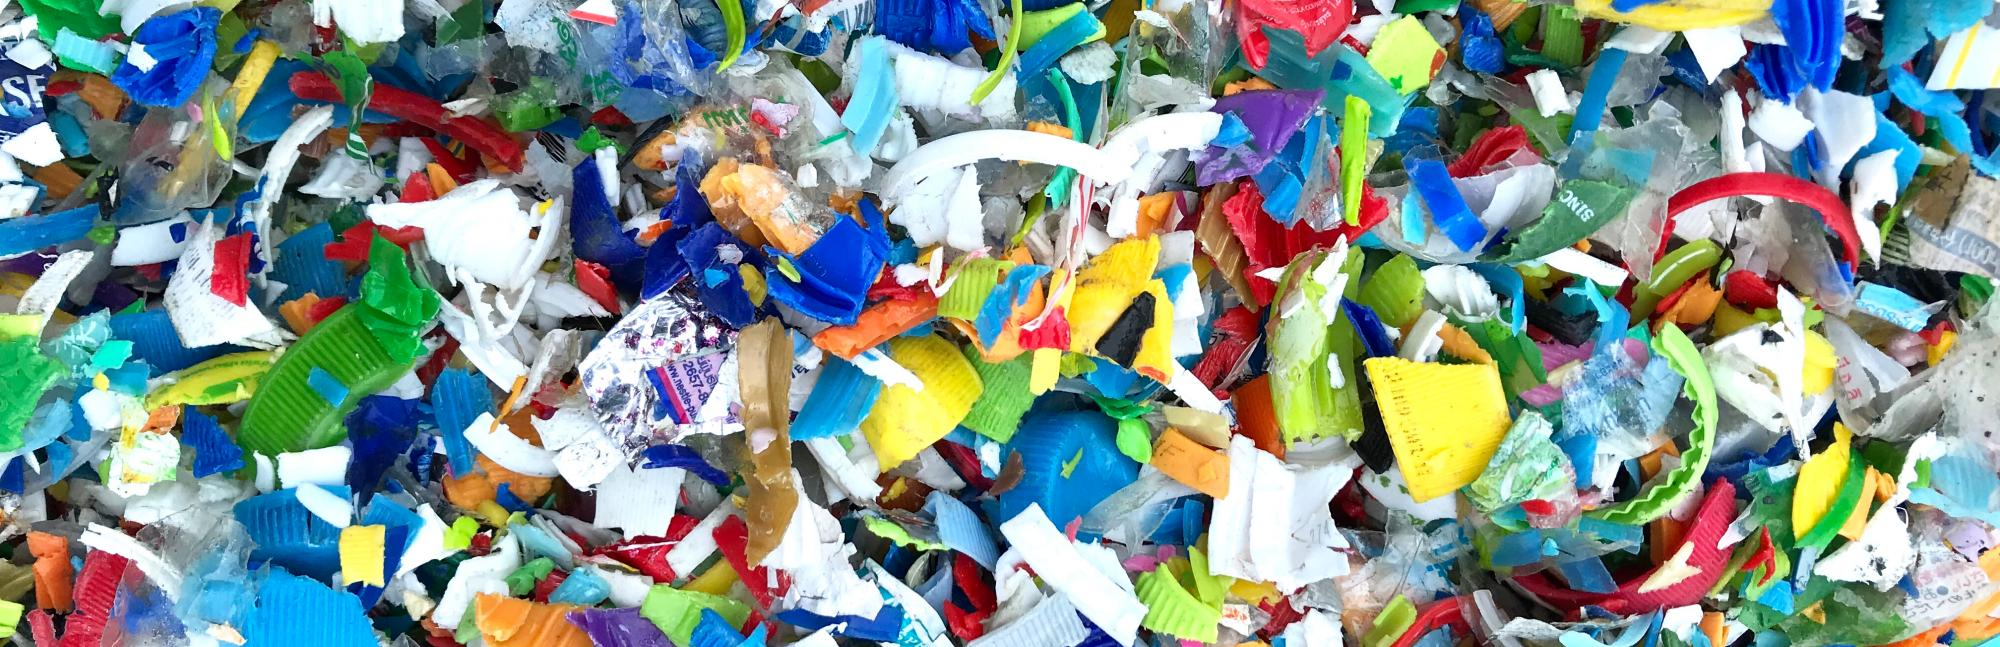 Pile of colourful shredded plastic